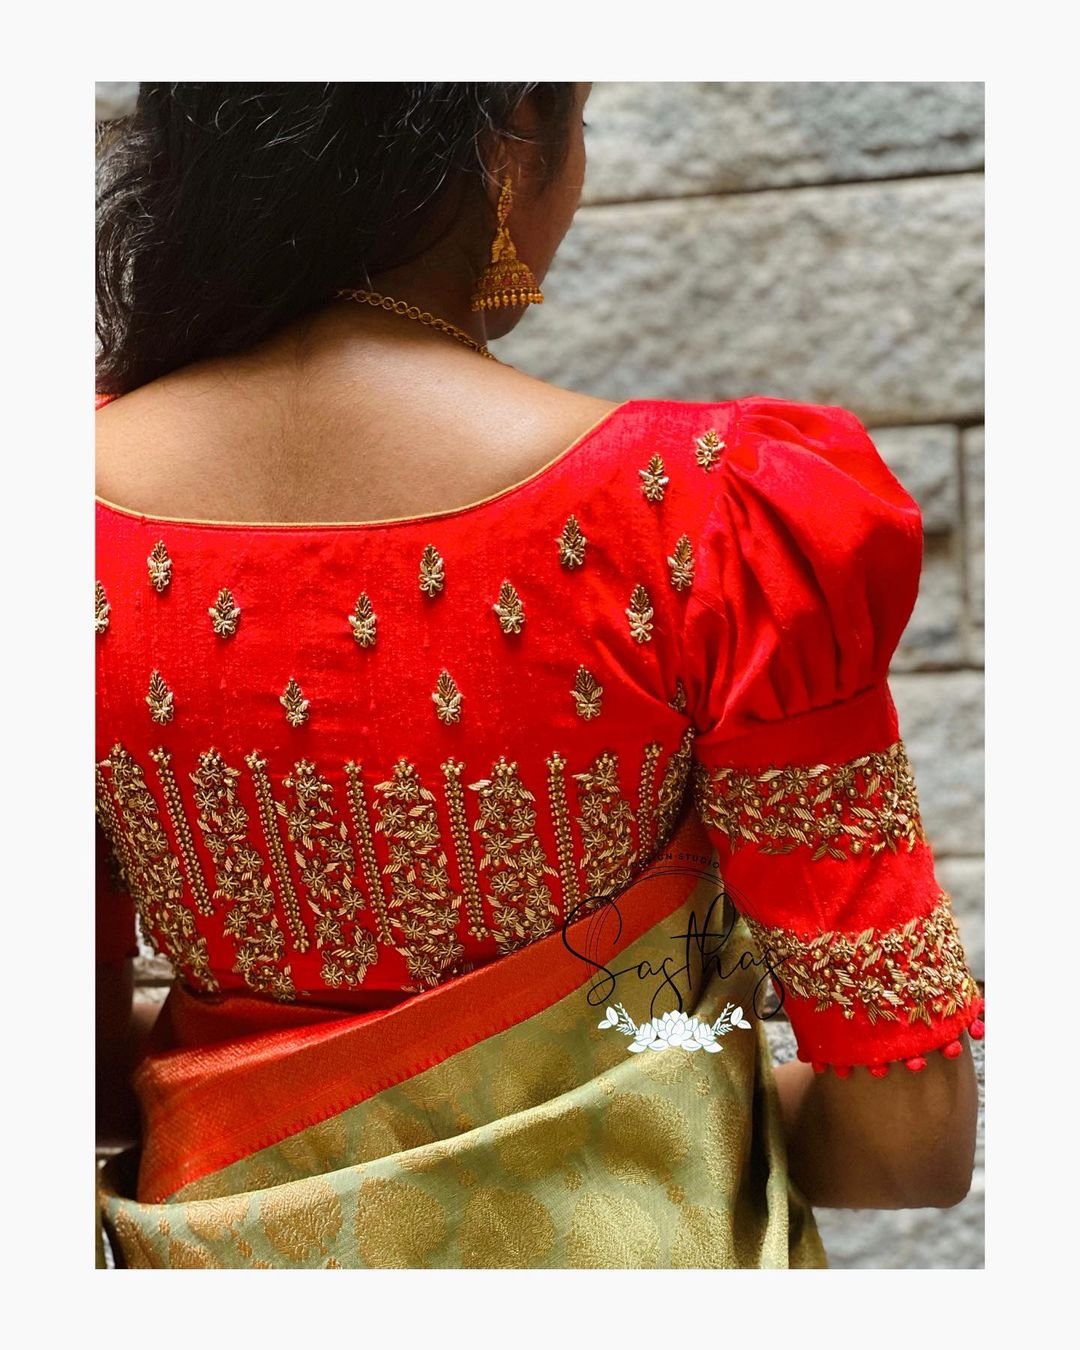 Gorgeous red color puffed sleeve blouse with floral bead mmaggam work. 2021-04-01